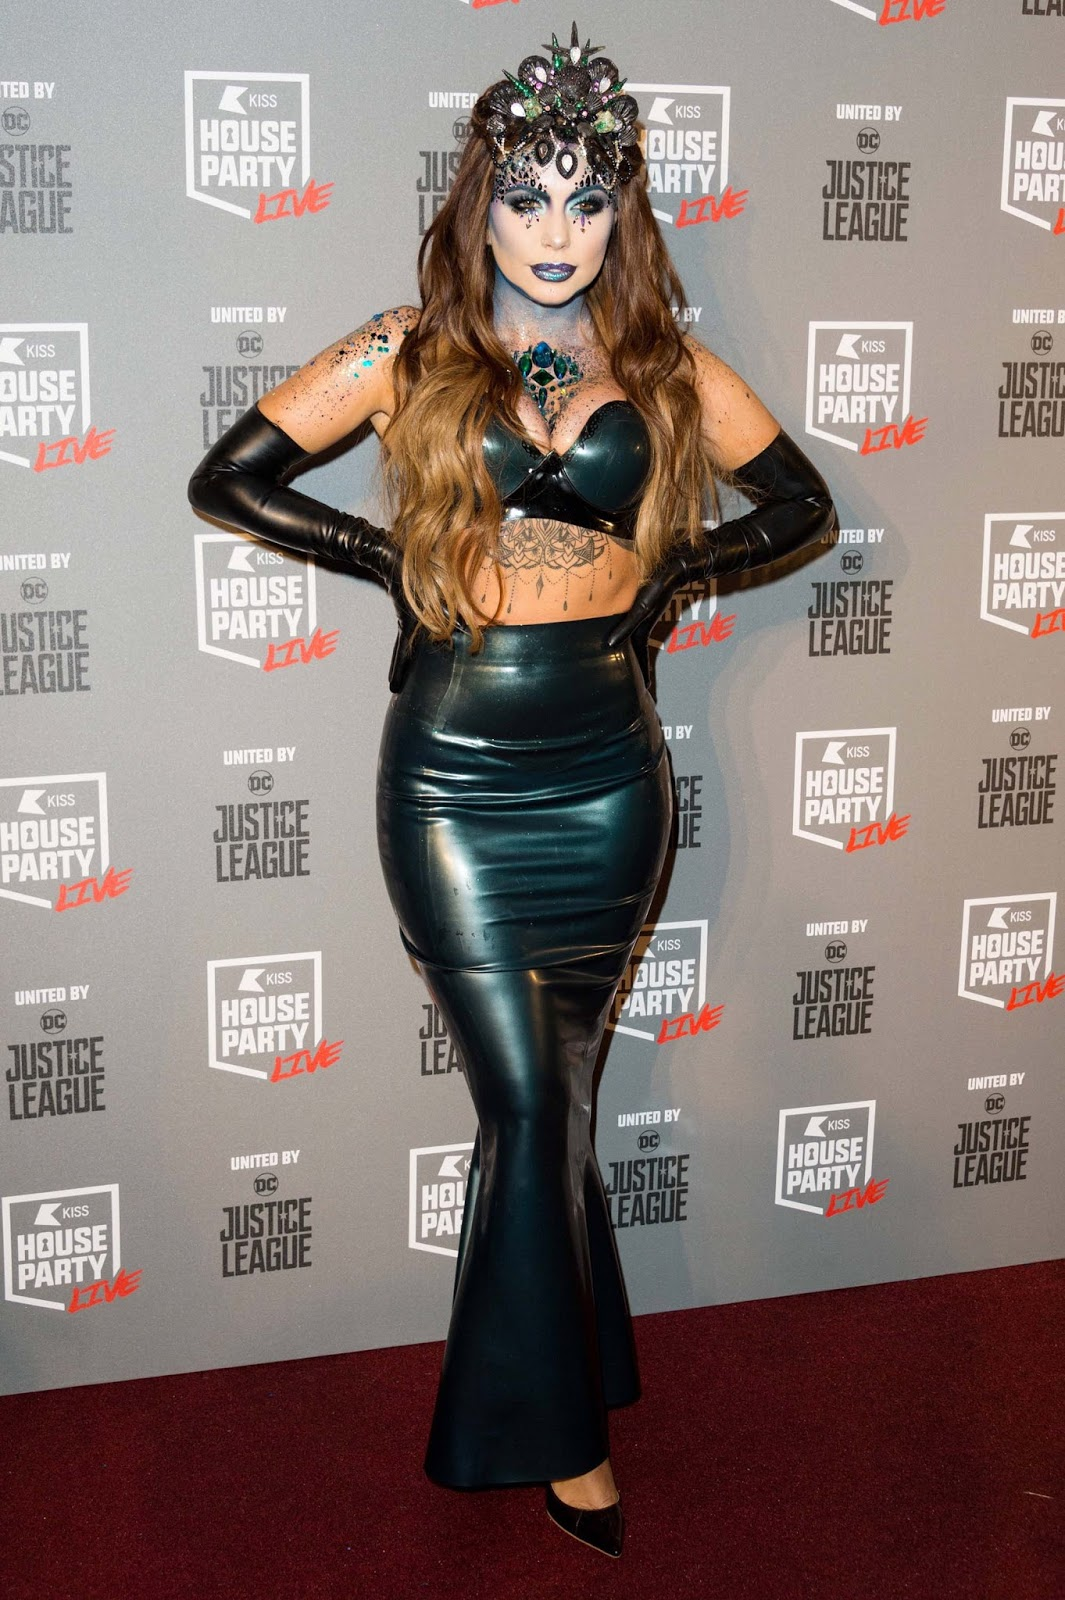 Holly Halston Latex regarding lovely ladies in leather: olivia buckland in a latex costume